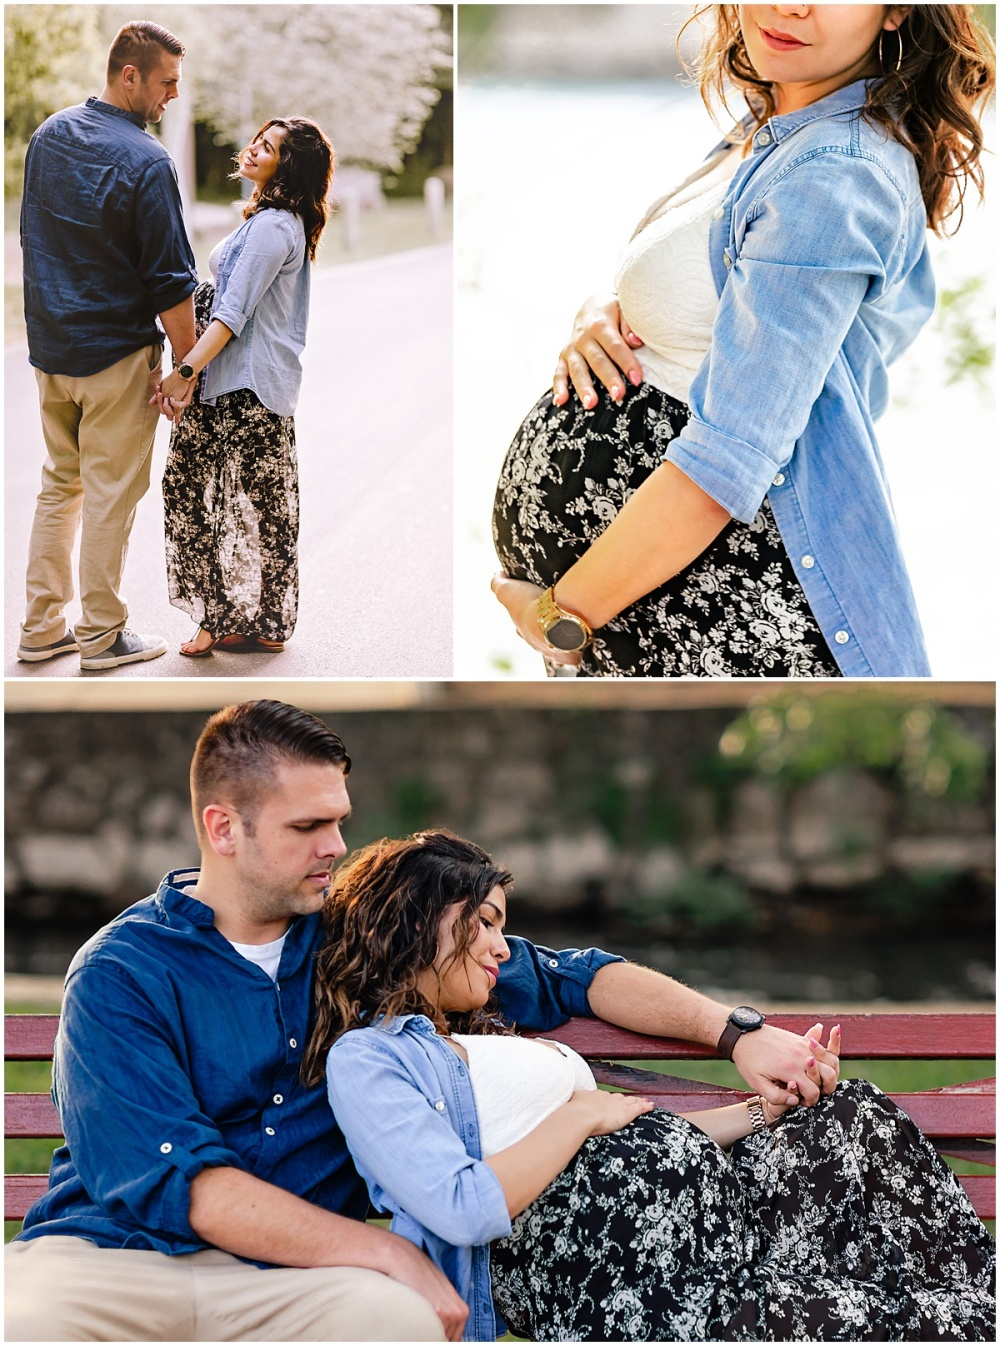 Maternity-Photo-Session-Brakenridge-Park-San-Antonio-Texas-Carly-Barton-Photography_0005.jpg